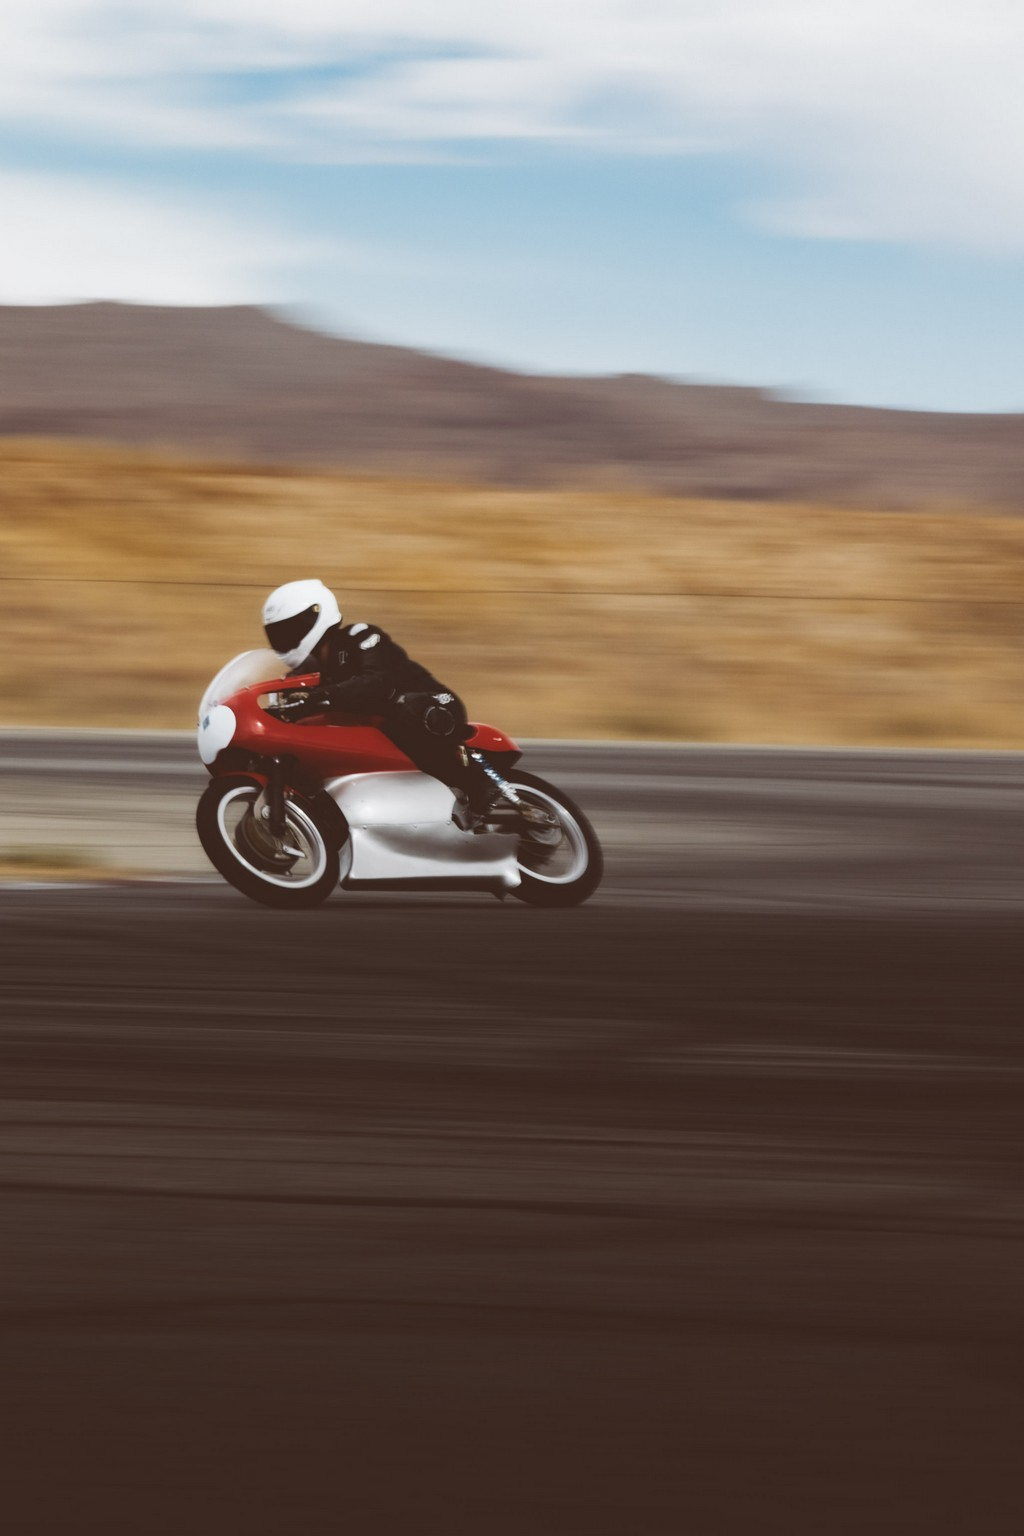 Red motorcycle racing on a track